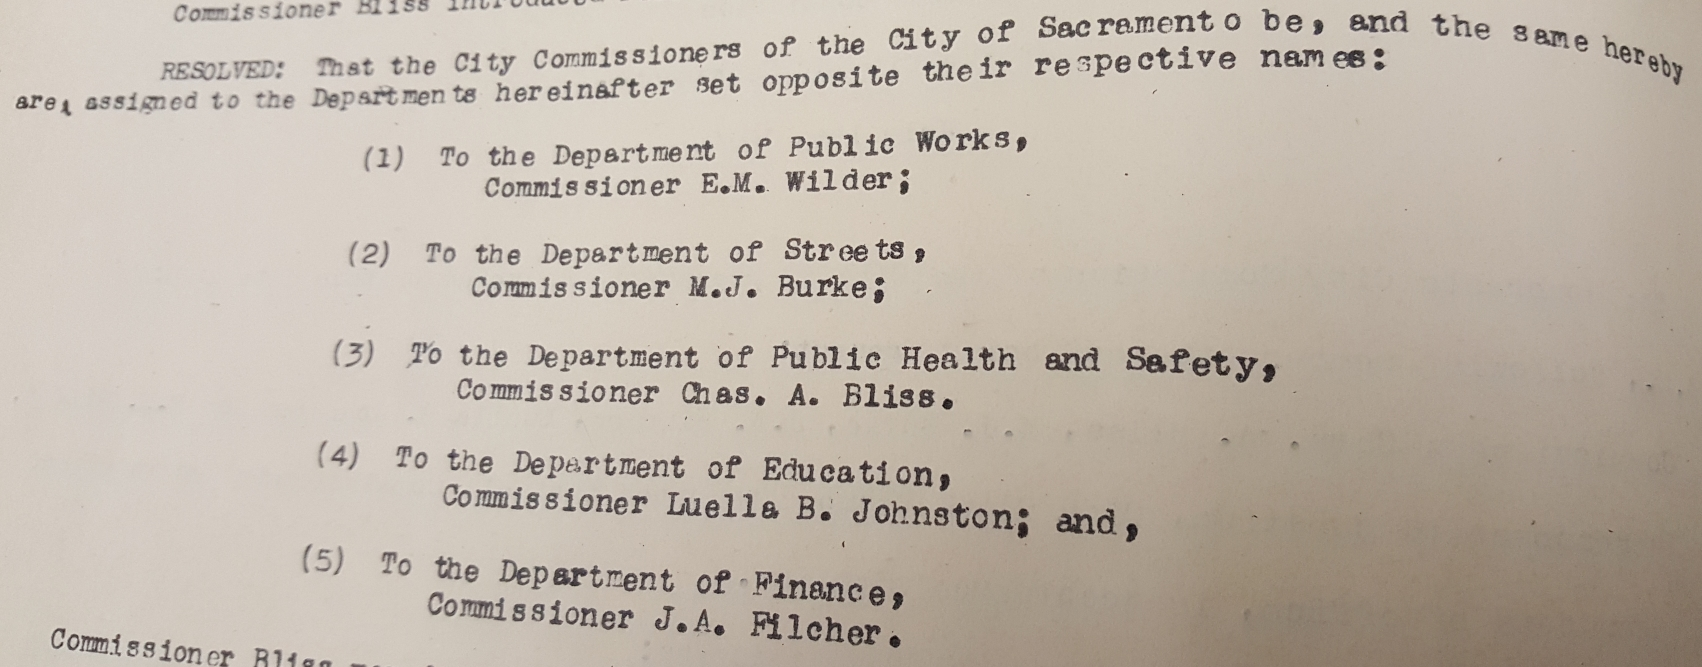 Commission Assignments - 1912